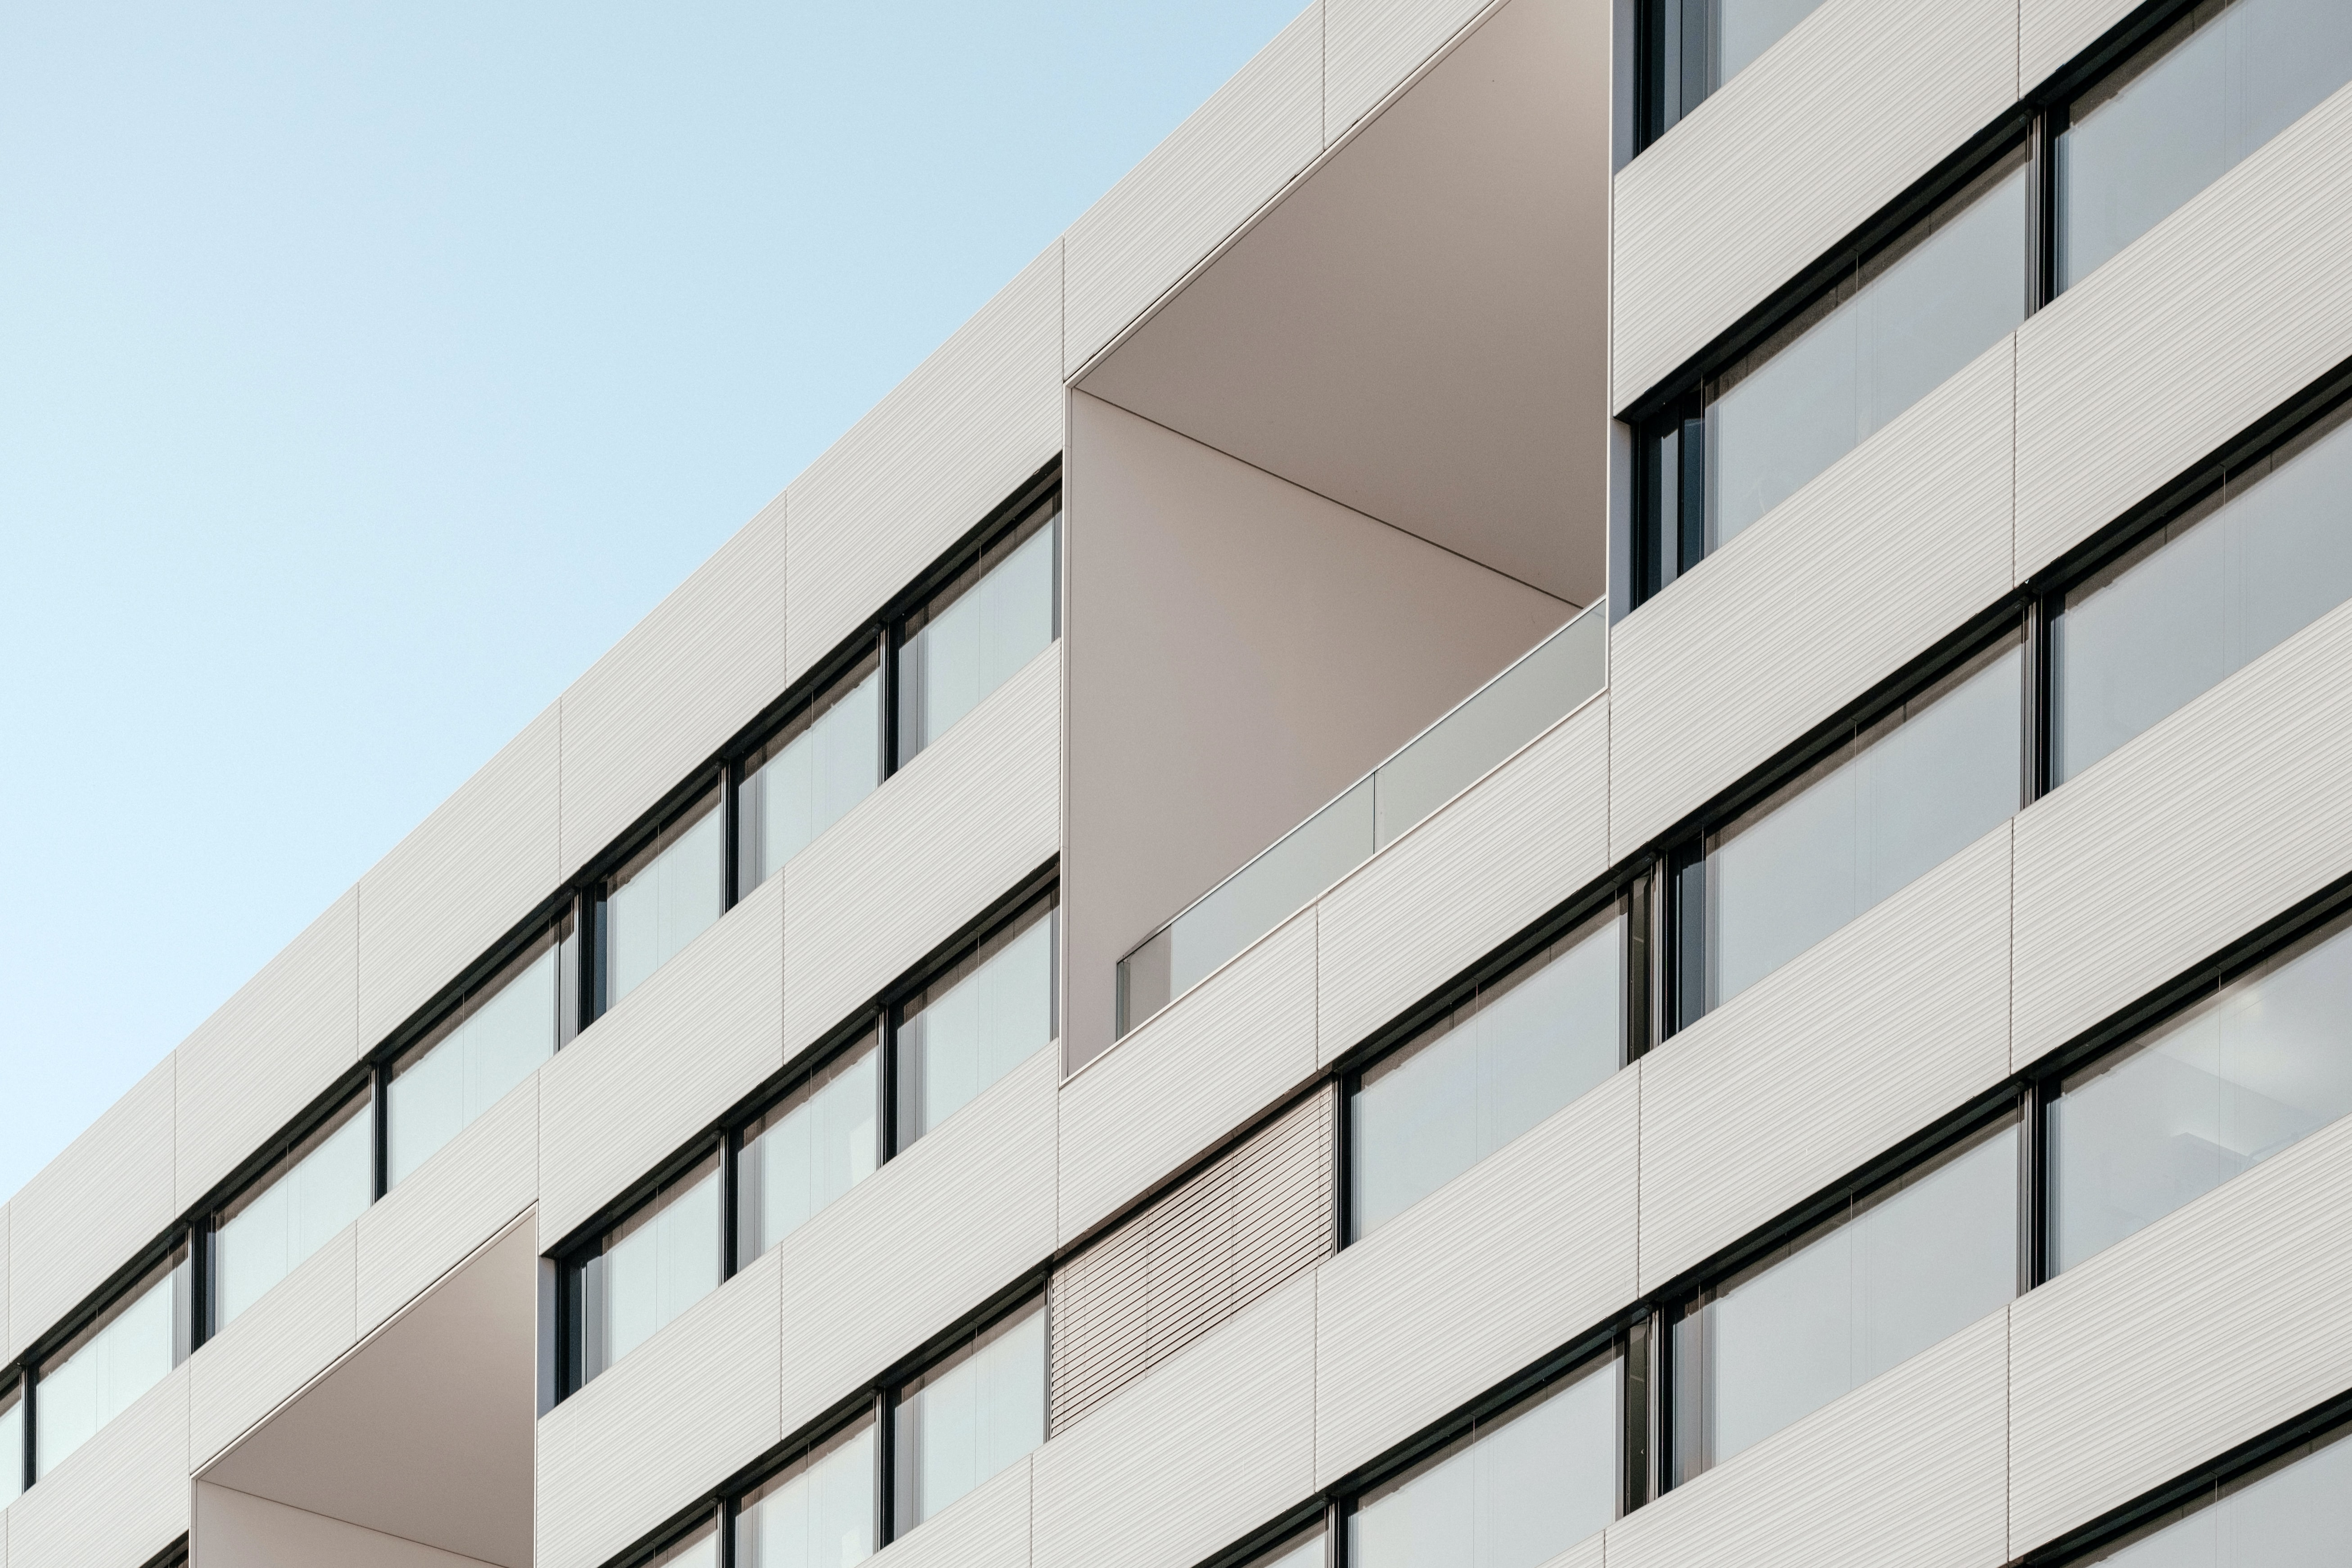 The facade of a residential building with large balconies